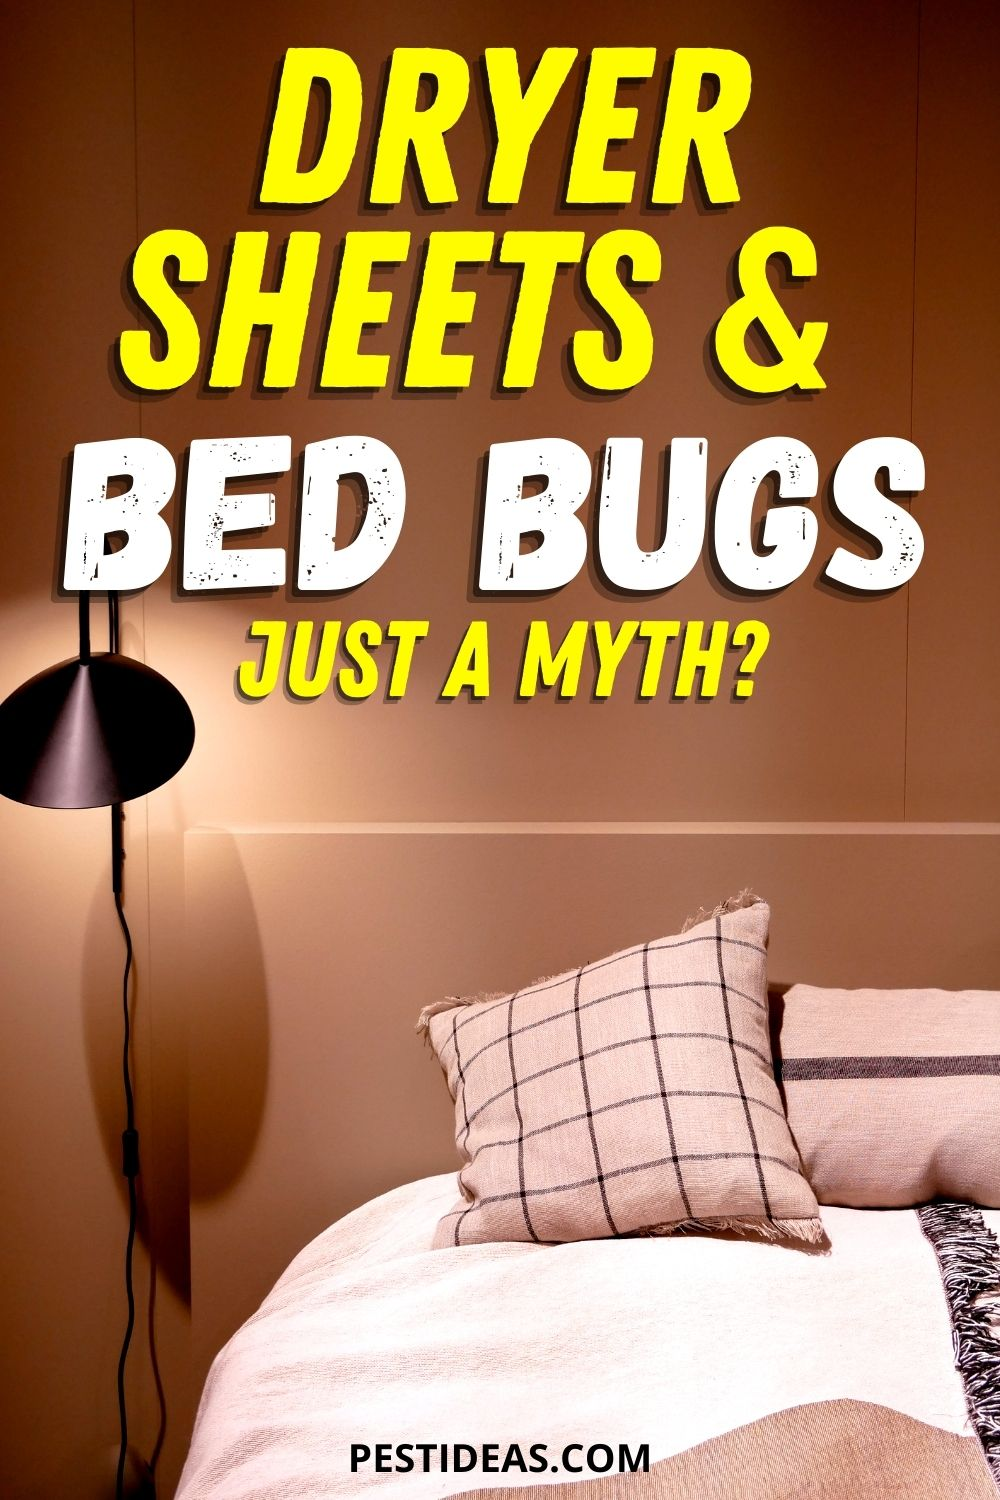 Dryer Sheets & Bed Bugs